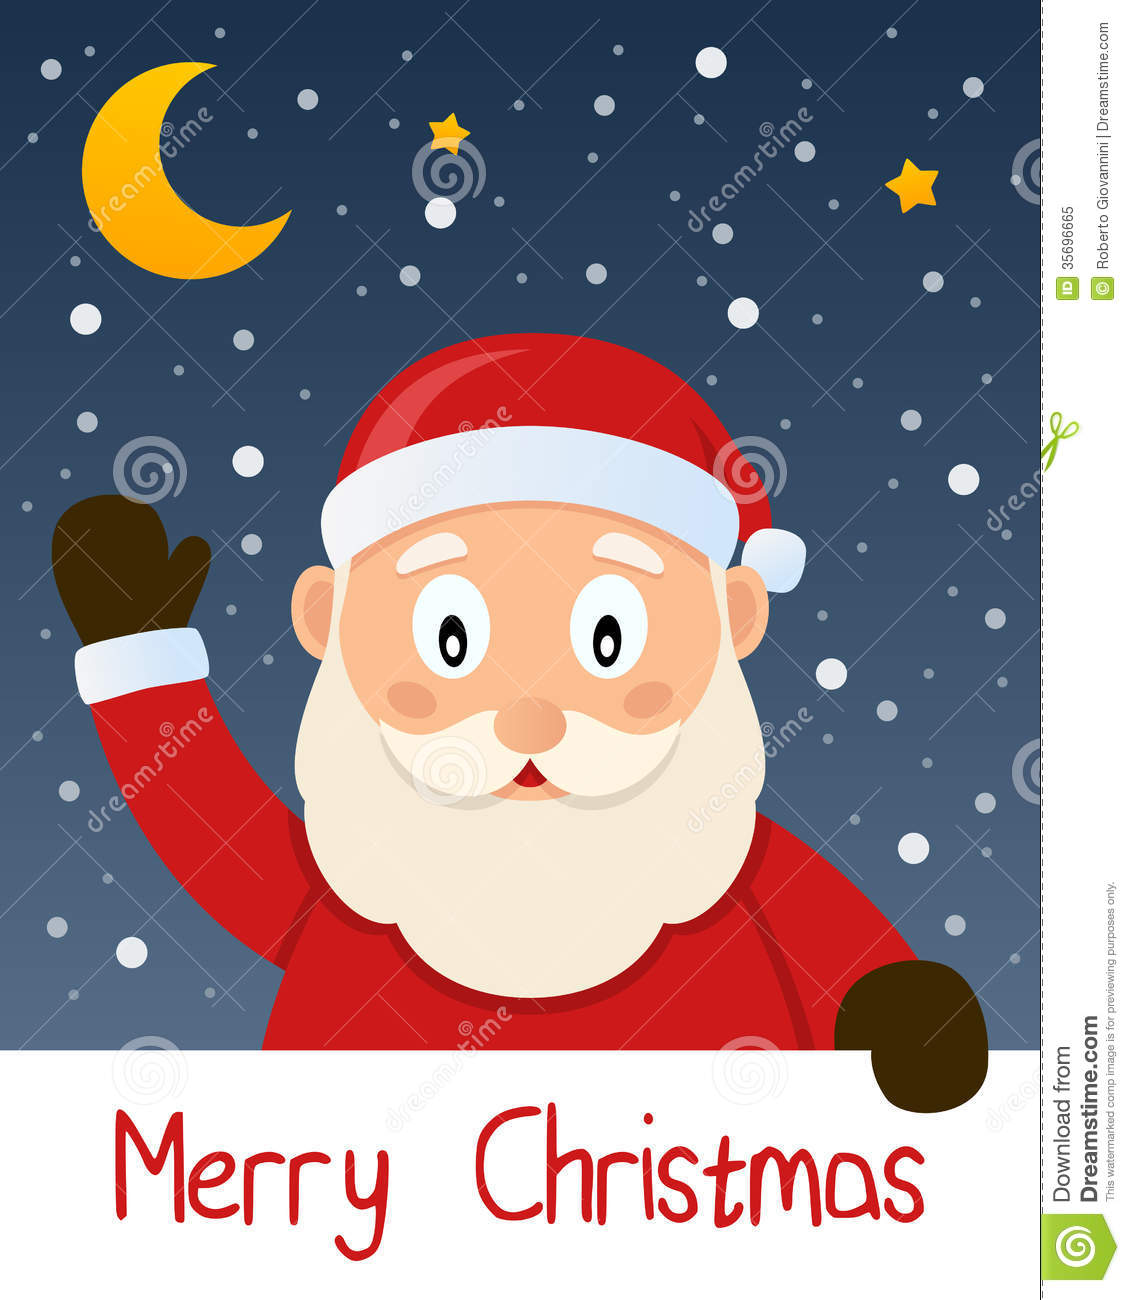 Santa Claus Christmas Greeting Card Stock Vector   Illustration of     Download comp